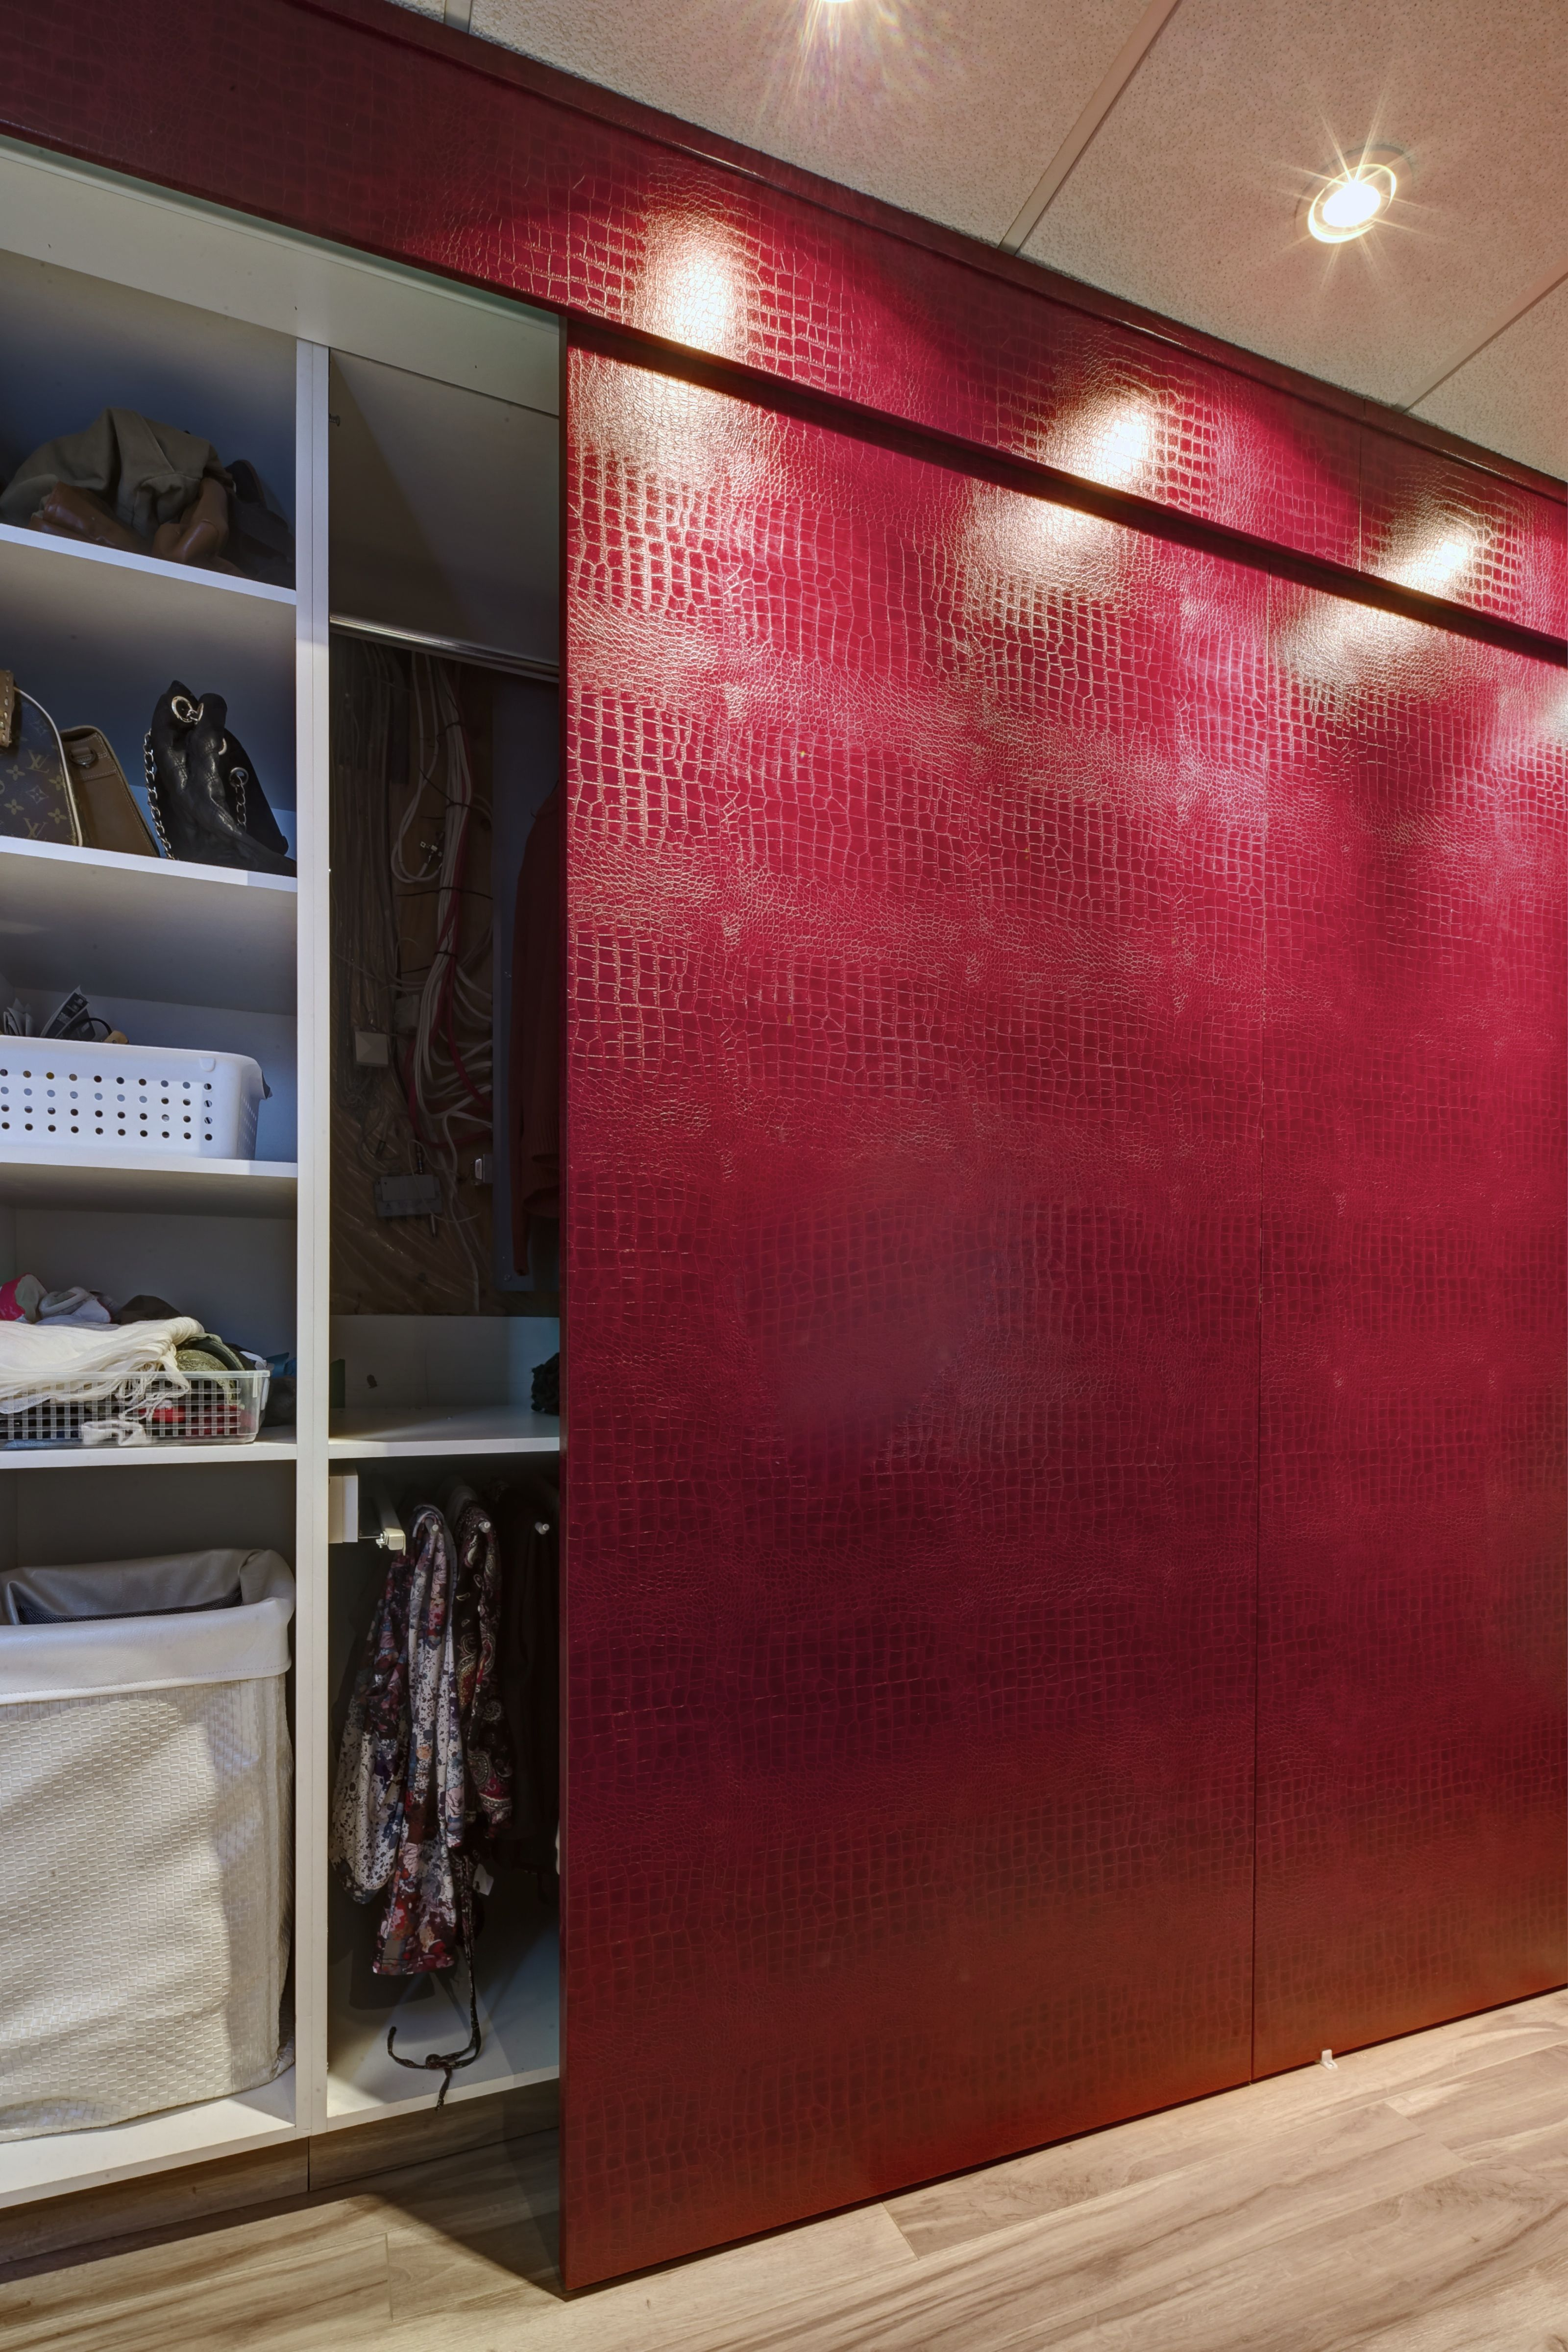 Bringing Sustainable Luxury To Interiors Decoleather Provides All The Best Qualities Of Leather Including The Look Feel And Aroma Home House House Design